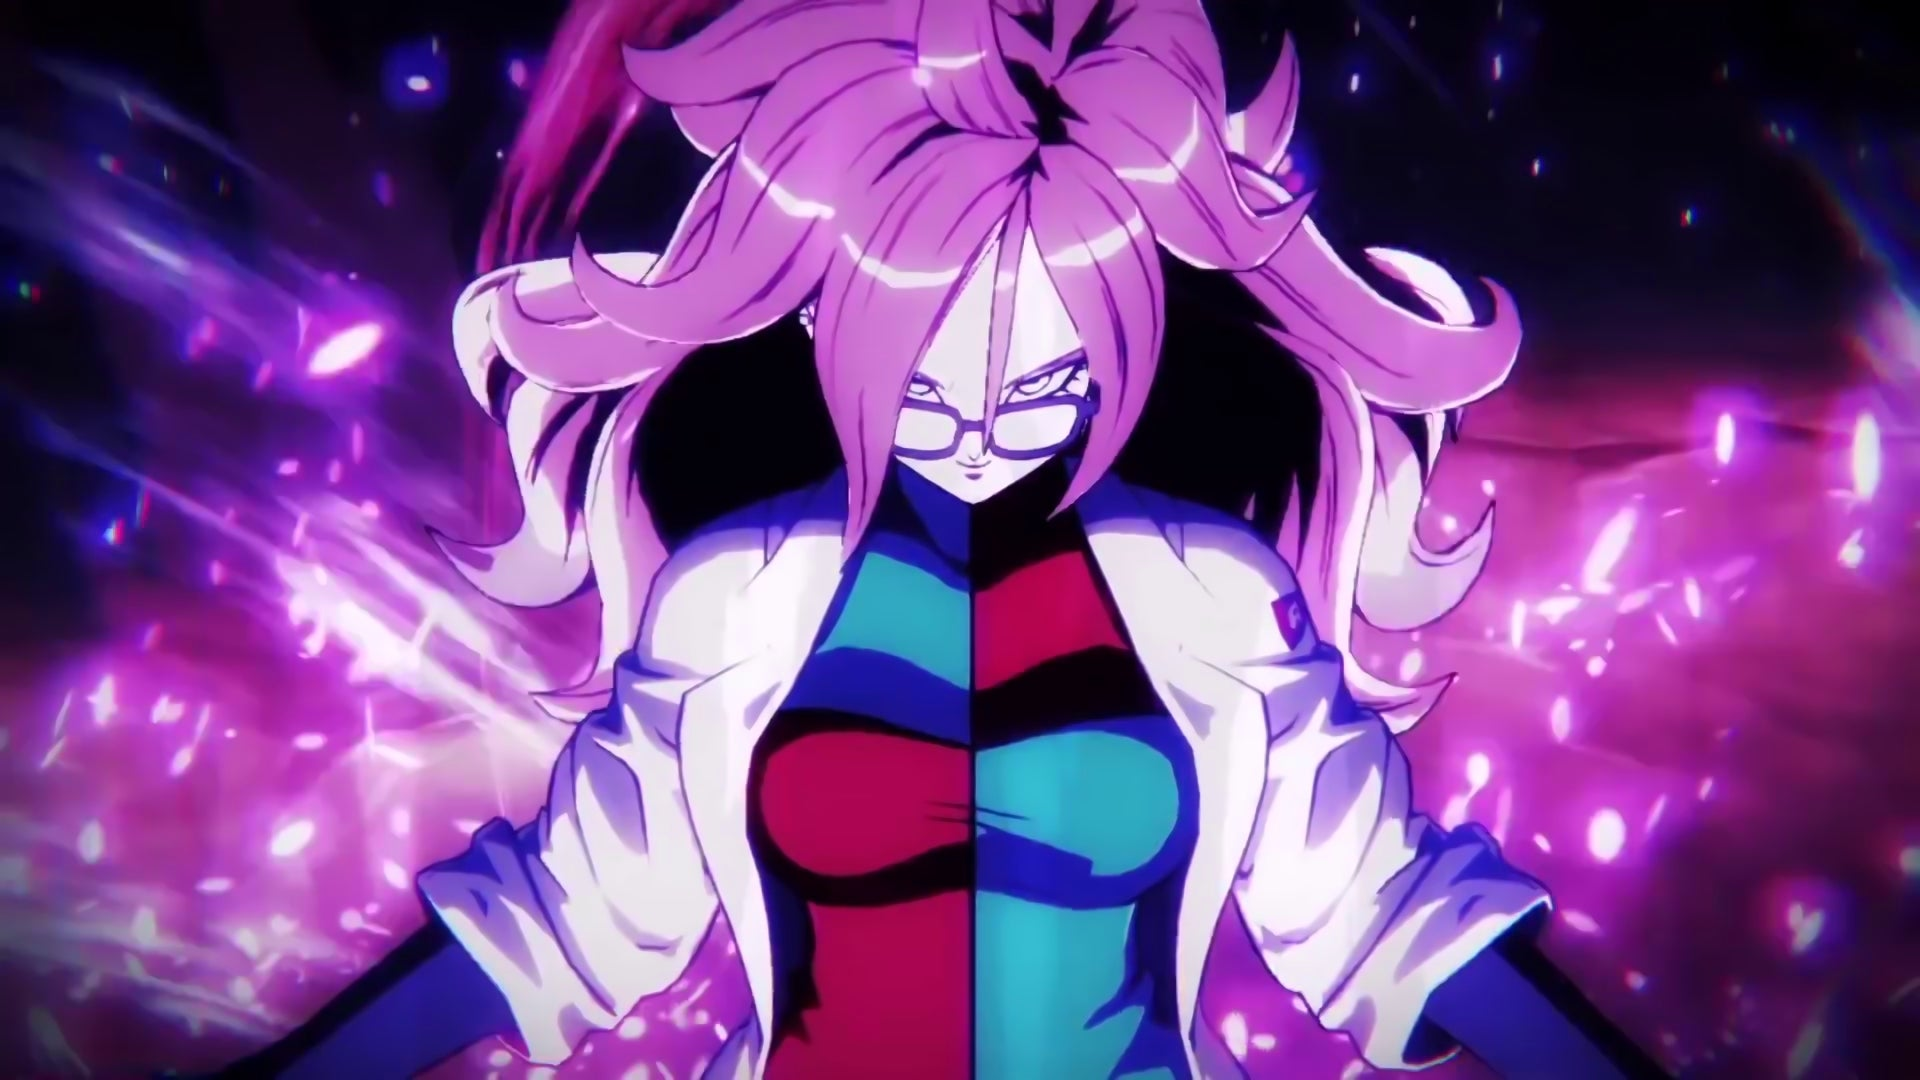 Android 21 cosplay